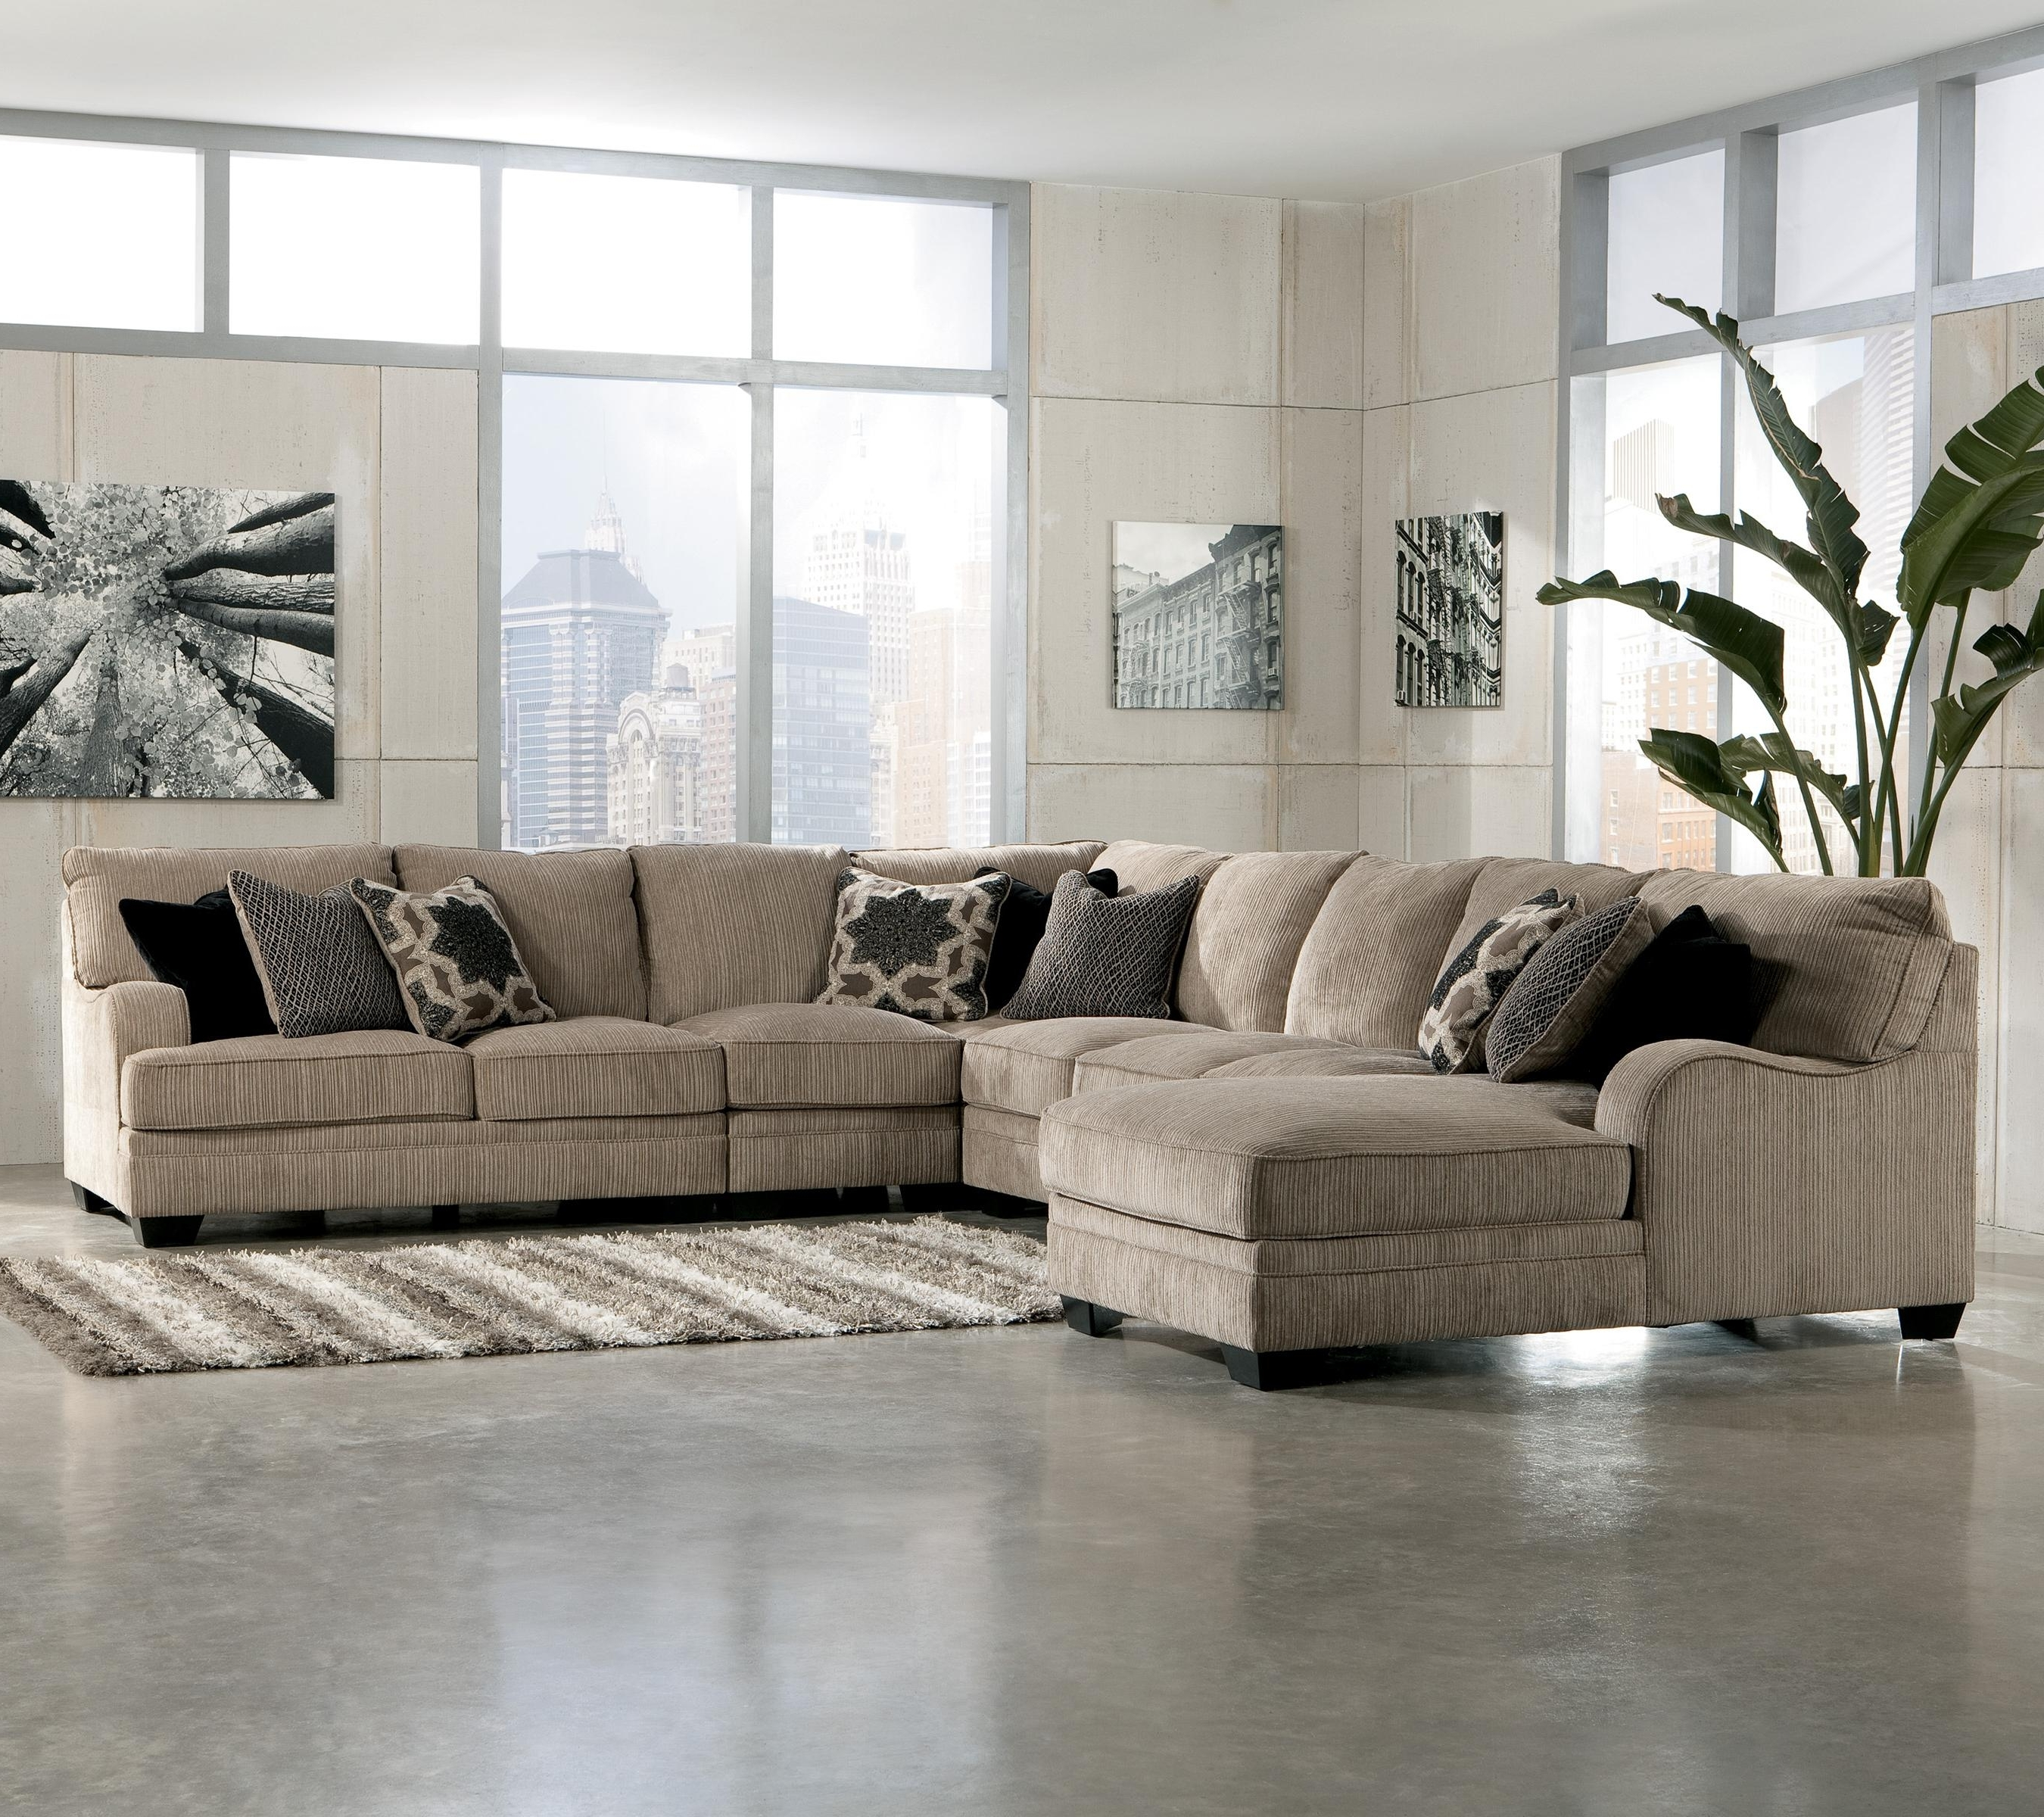 Best and Newest Rochester Ny Sectional Sofas for Living Room Sectional: Katisha 4-Piece Sectionalashley